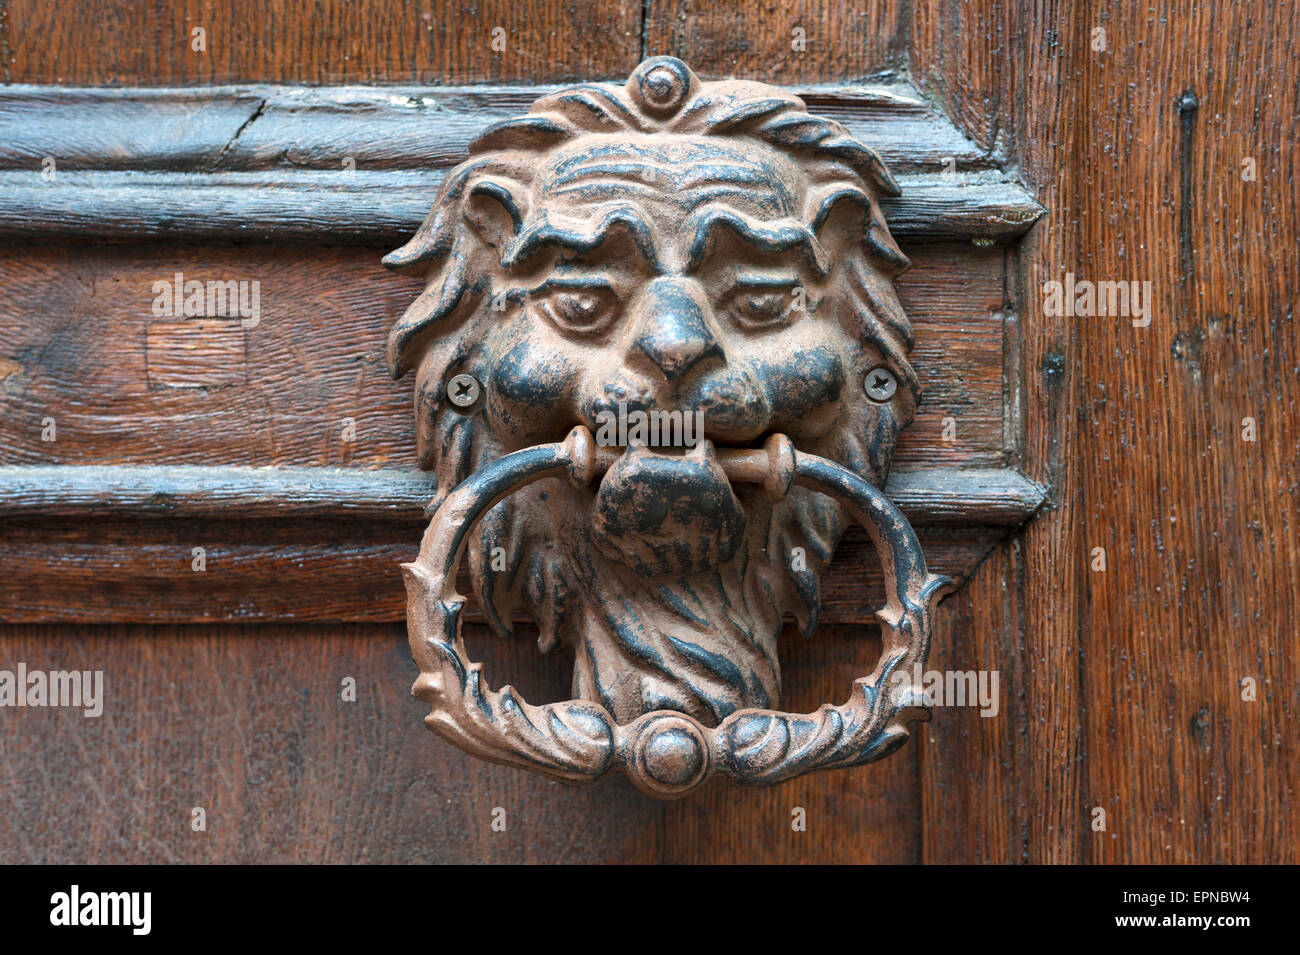 Lionhead as doorknocker of an entrance door, Königsberg, Bayern, Germany Stock Photo